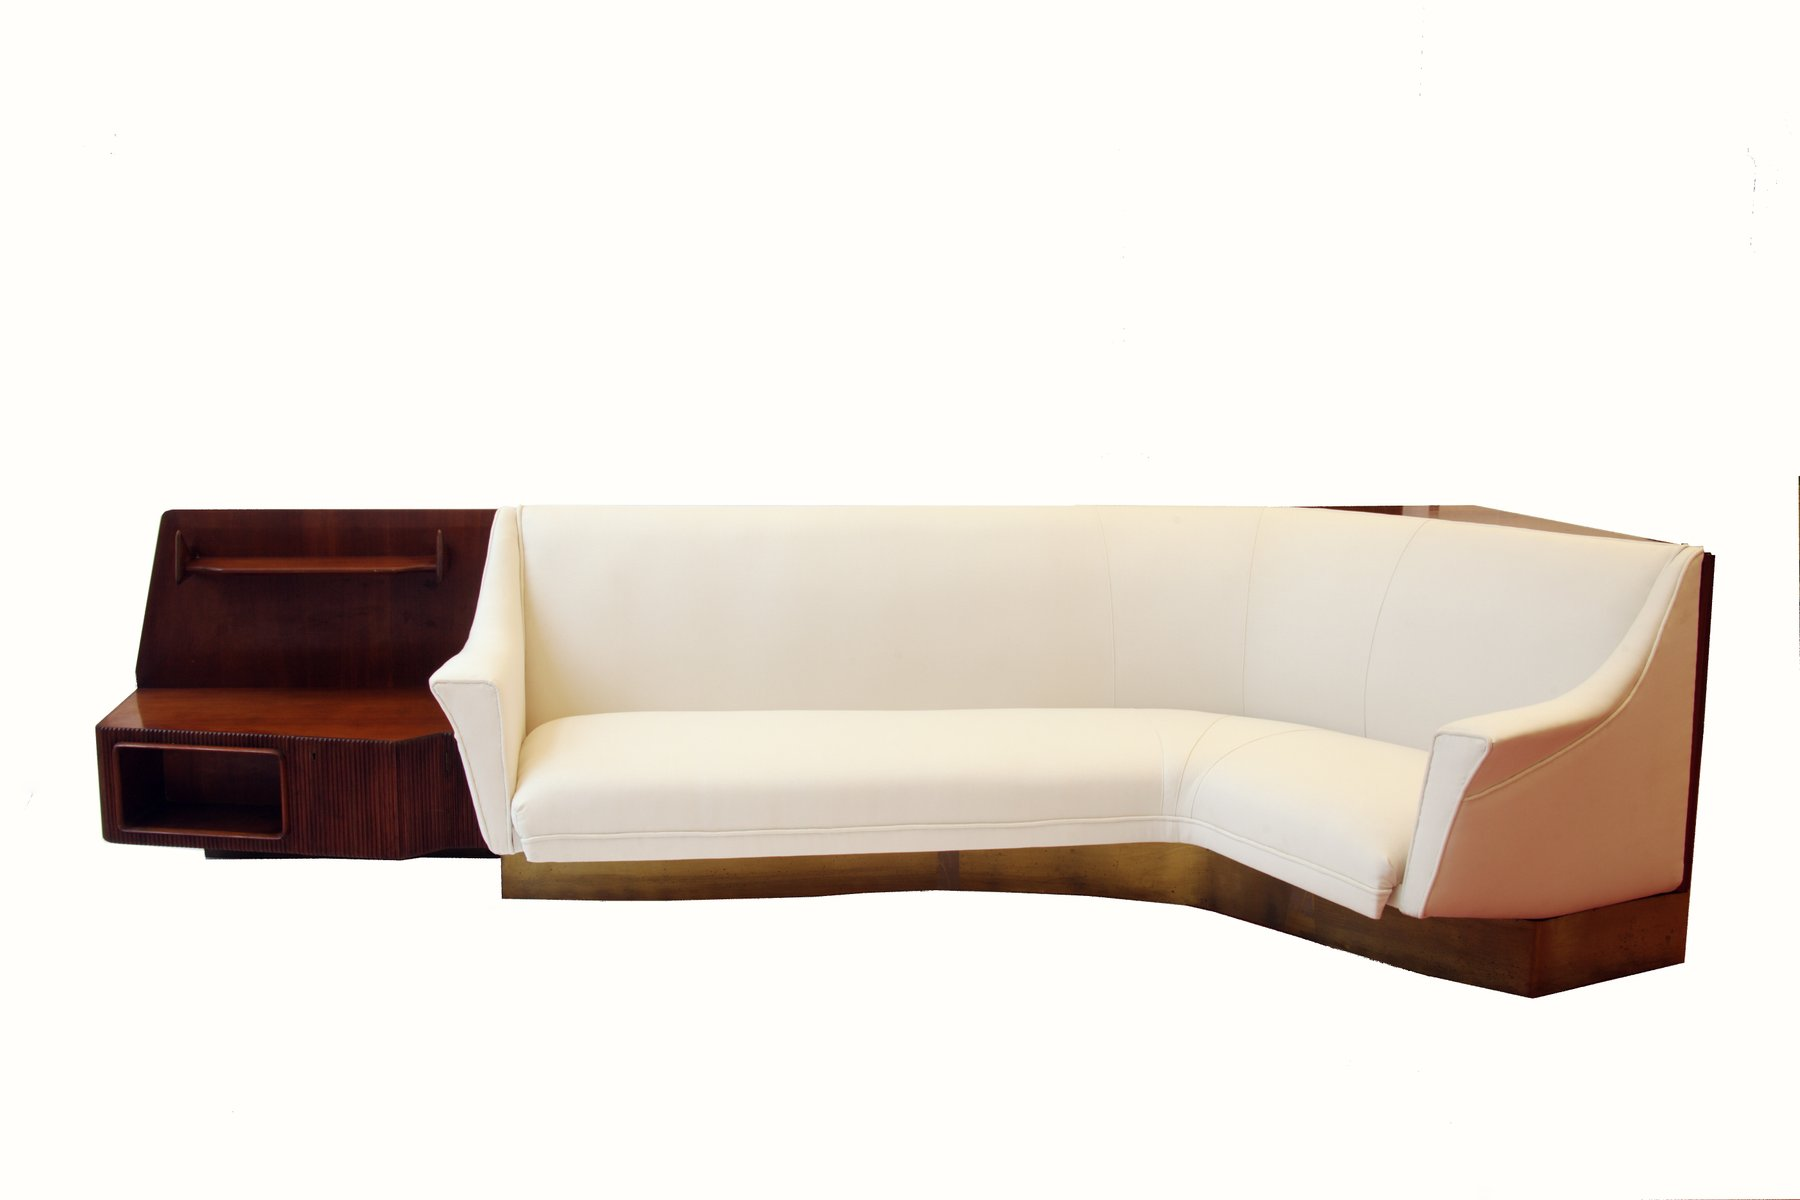 Vintage Curved Conversation Sofa And Shelves 1940s